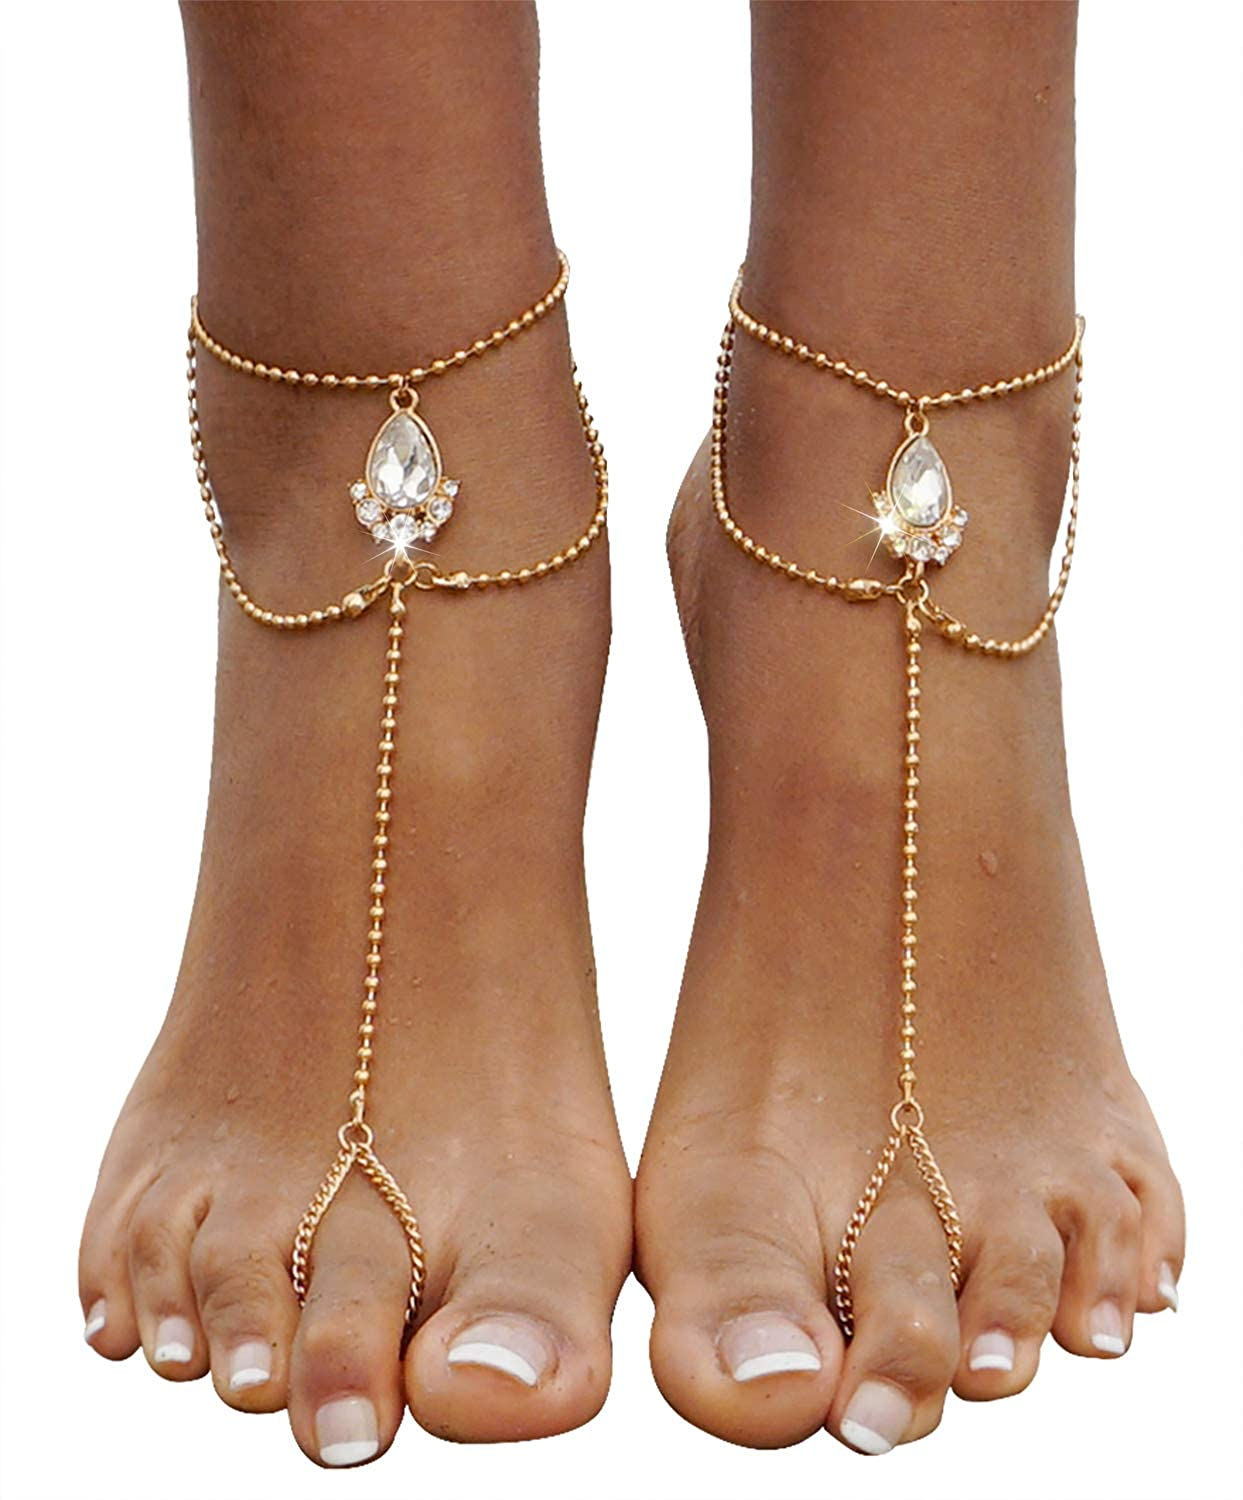 Jewelry & Watches Women Vintage Boho Tassel Anklet Bracelet Barefoot Sandal Beach Anklet Jewelry Complete Range Of Articles Anklets